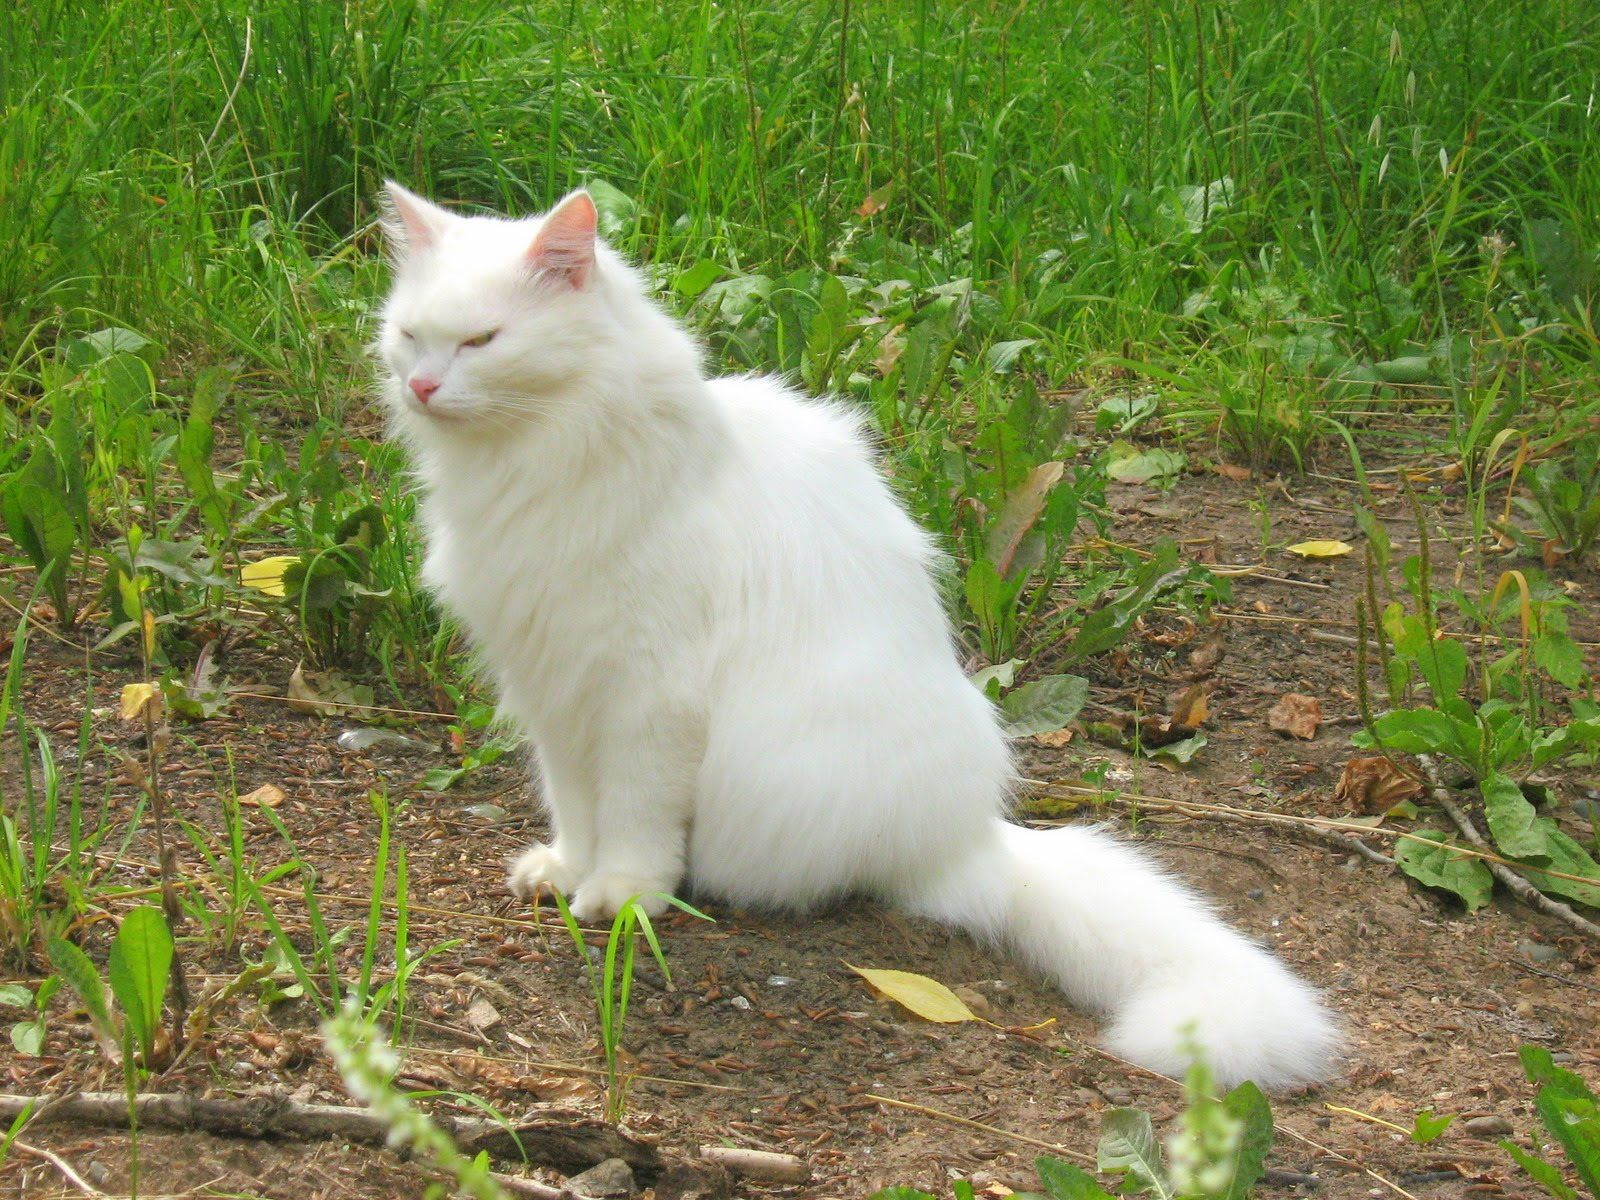 Russian White Cat Fat Tired of your cats spraying here to